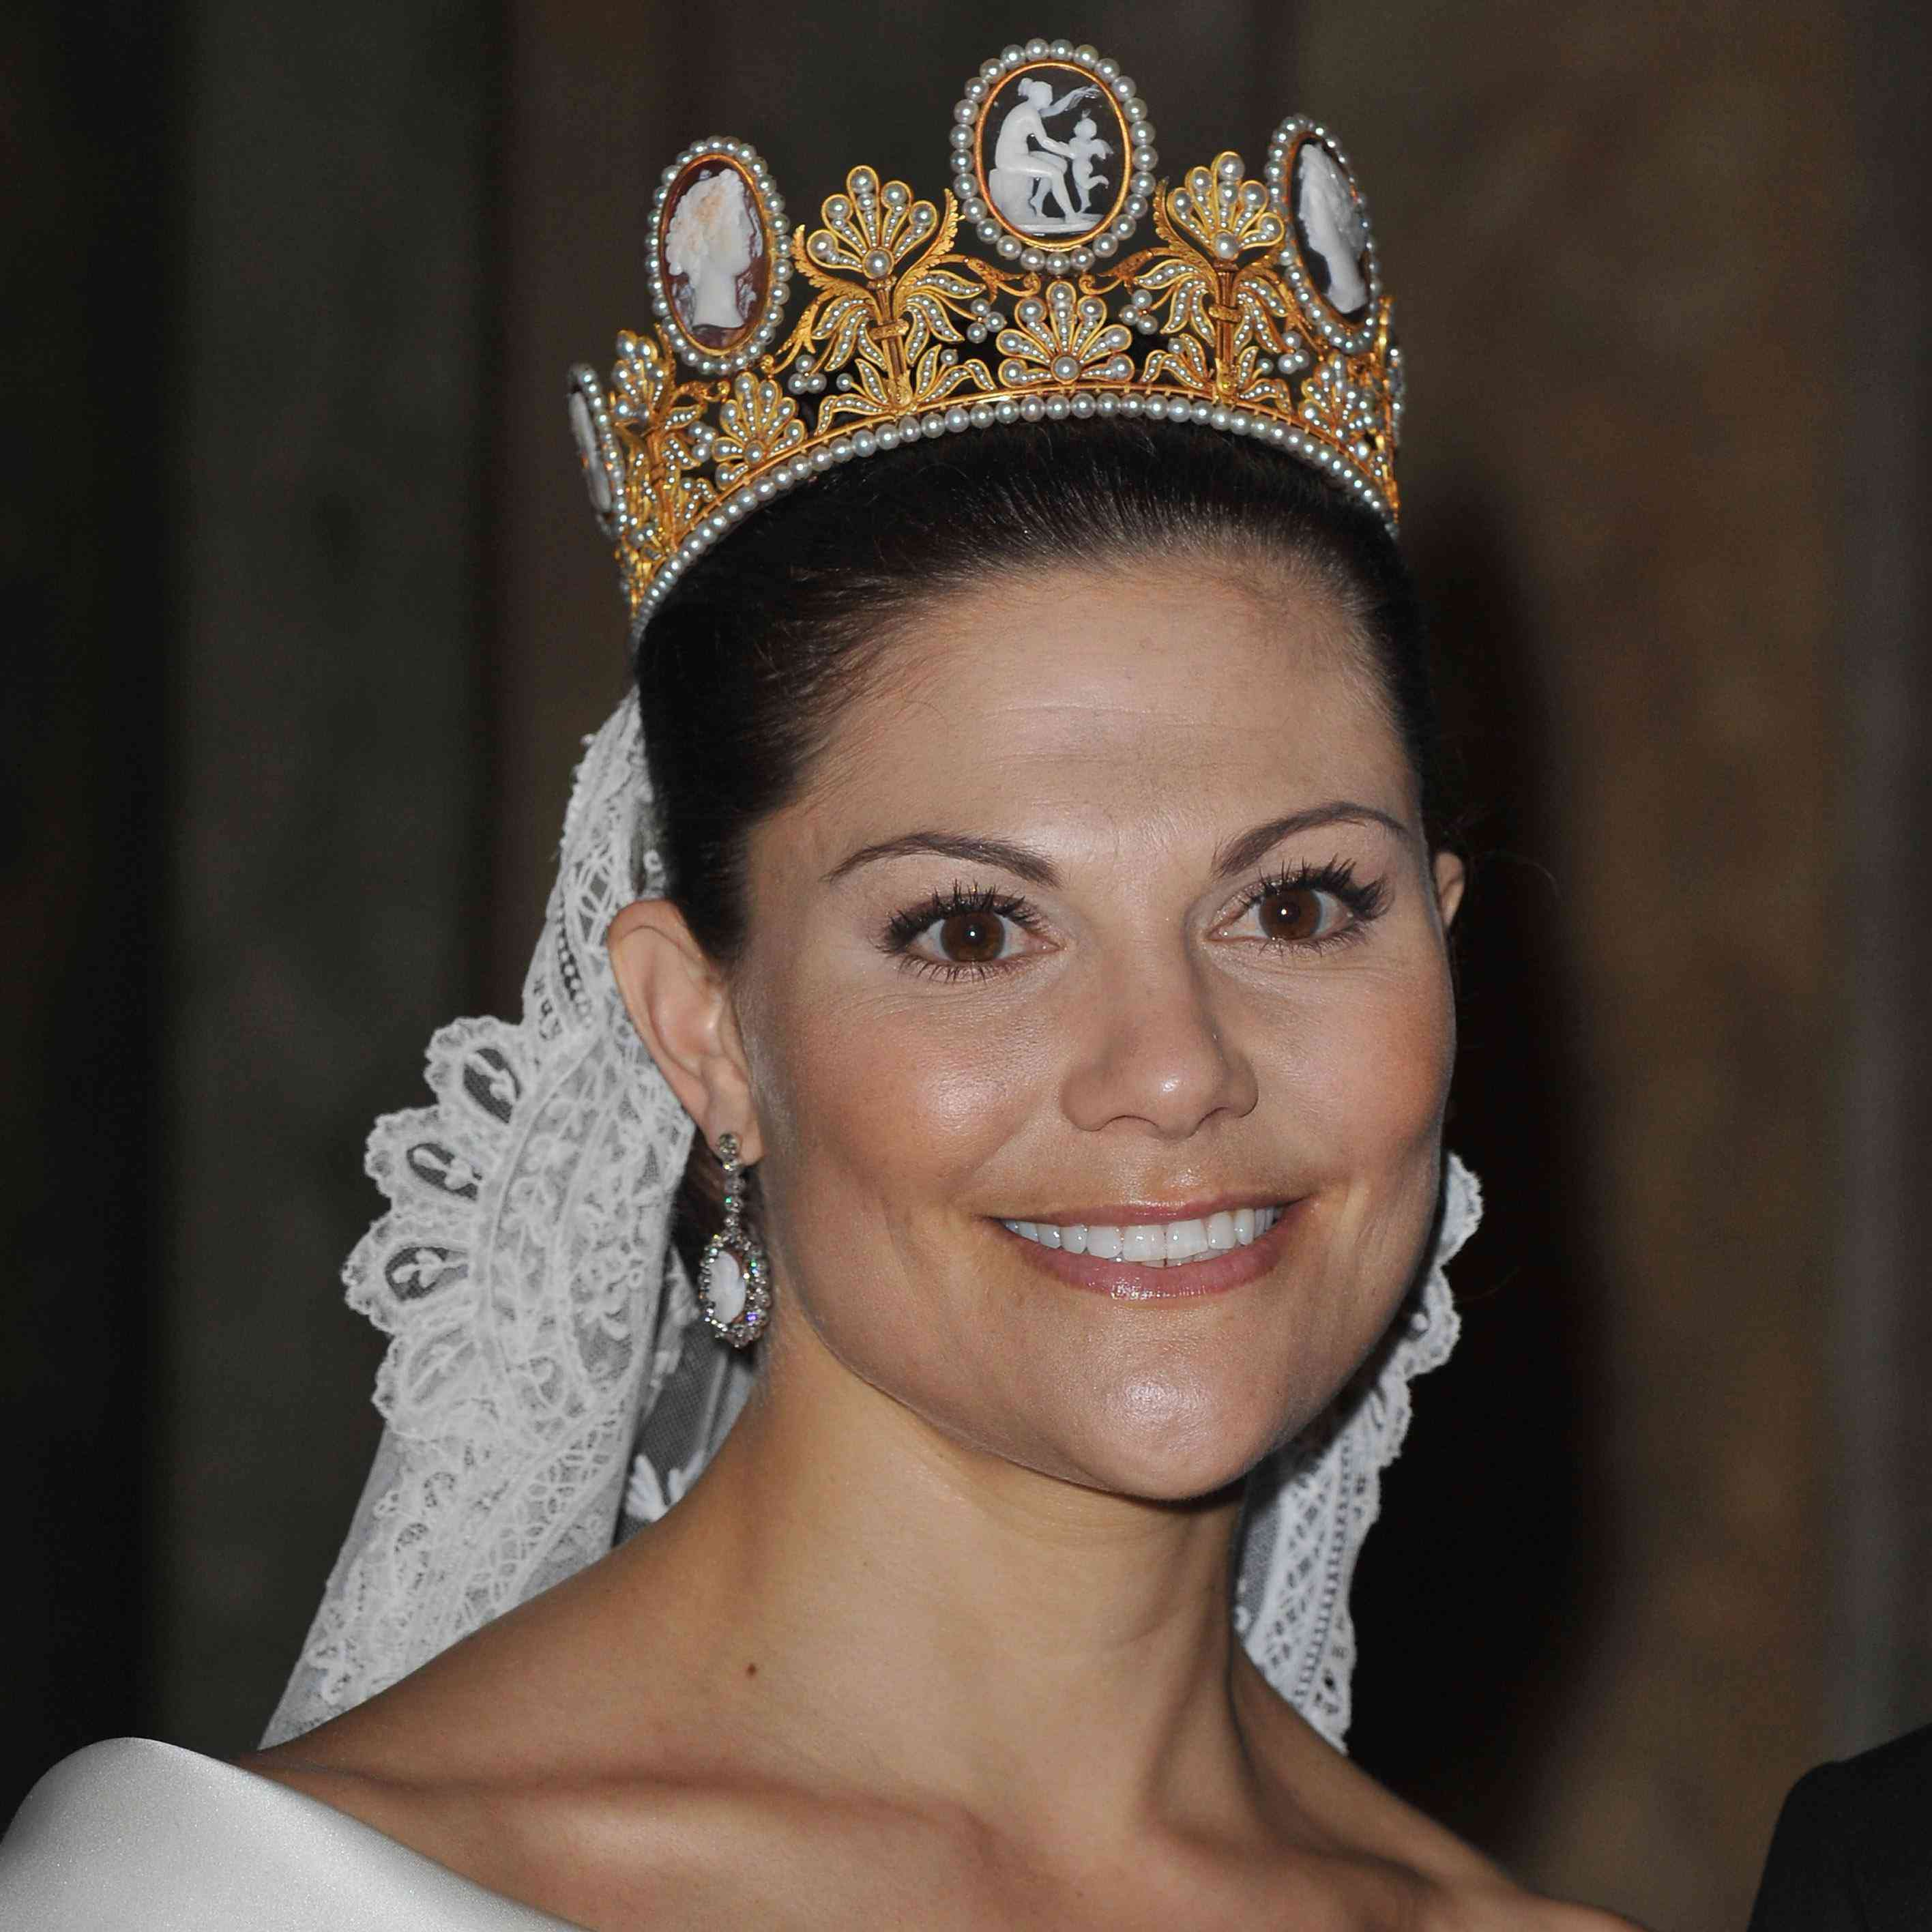 36 Best Fashion Monitor Journalism Awards Images On: Princess Victoria Of Sweden Wore Her Mother's Dress 23